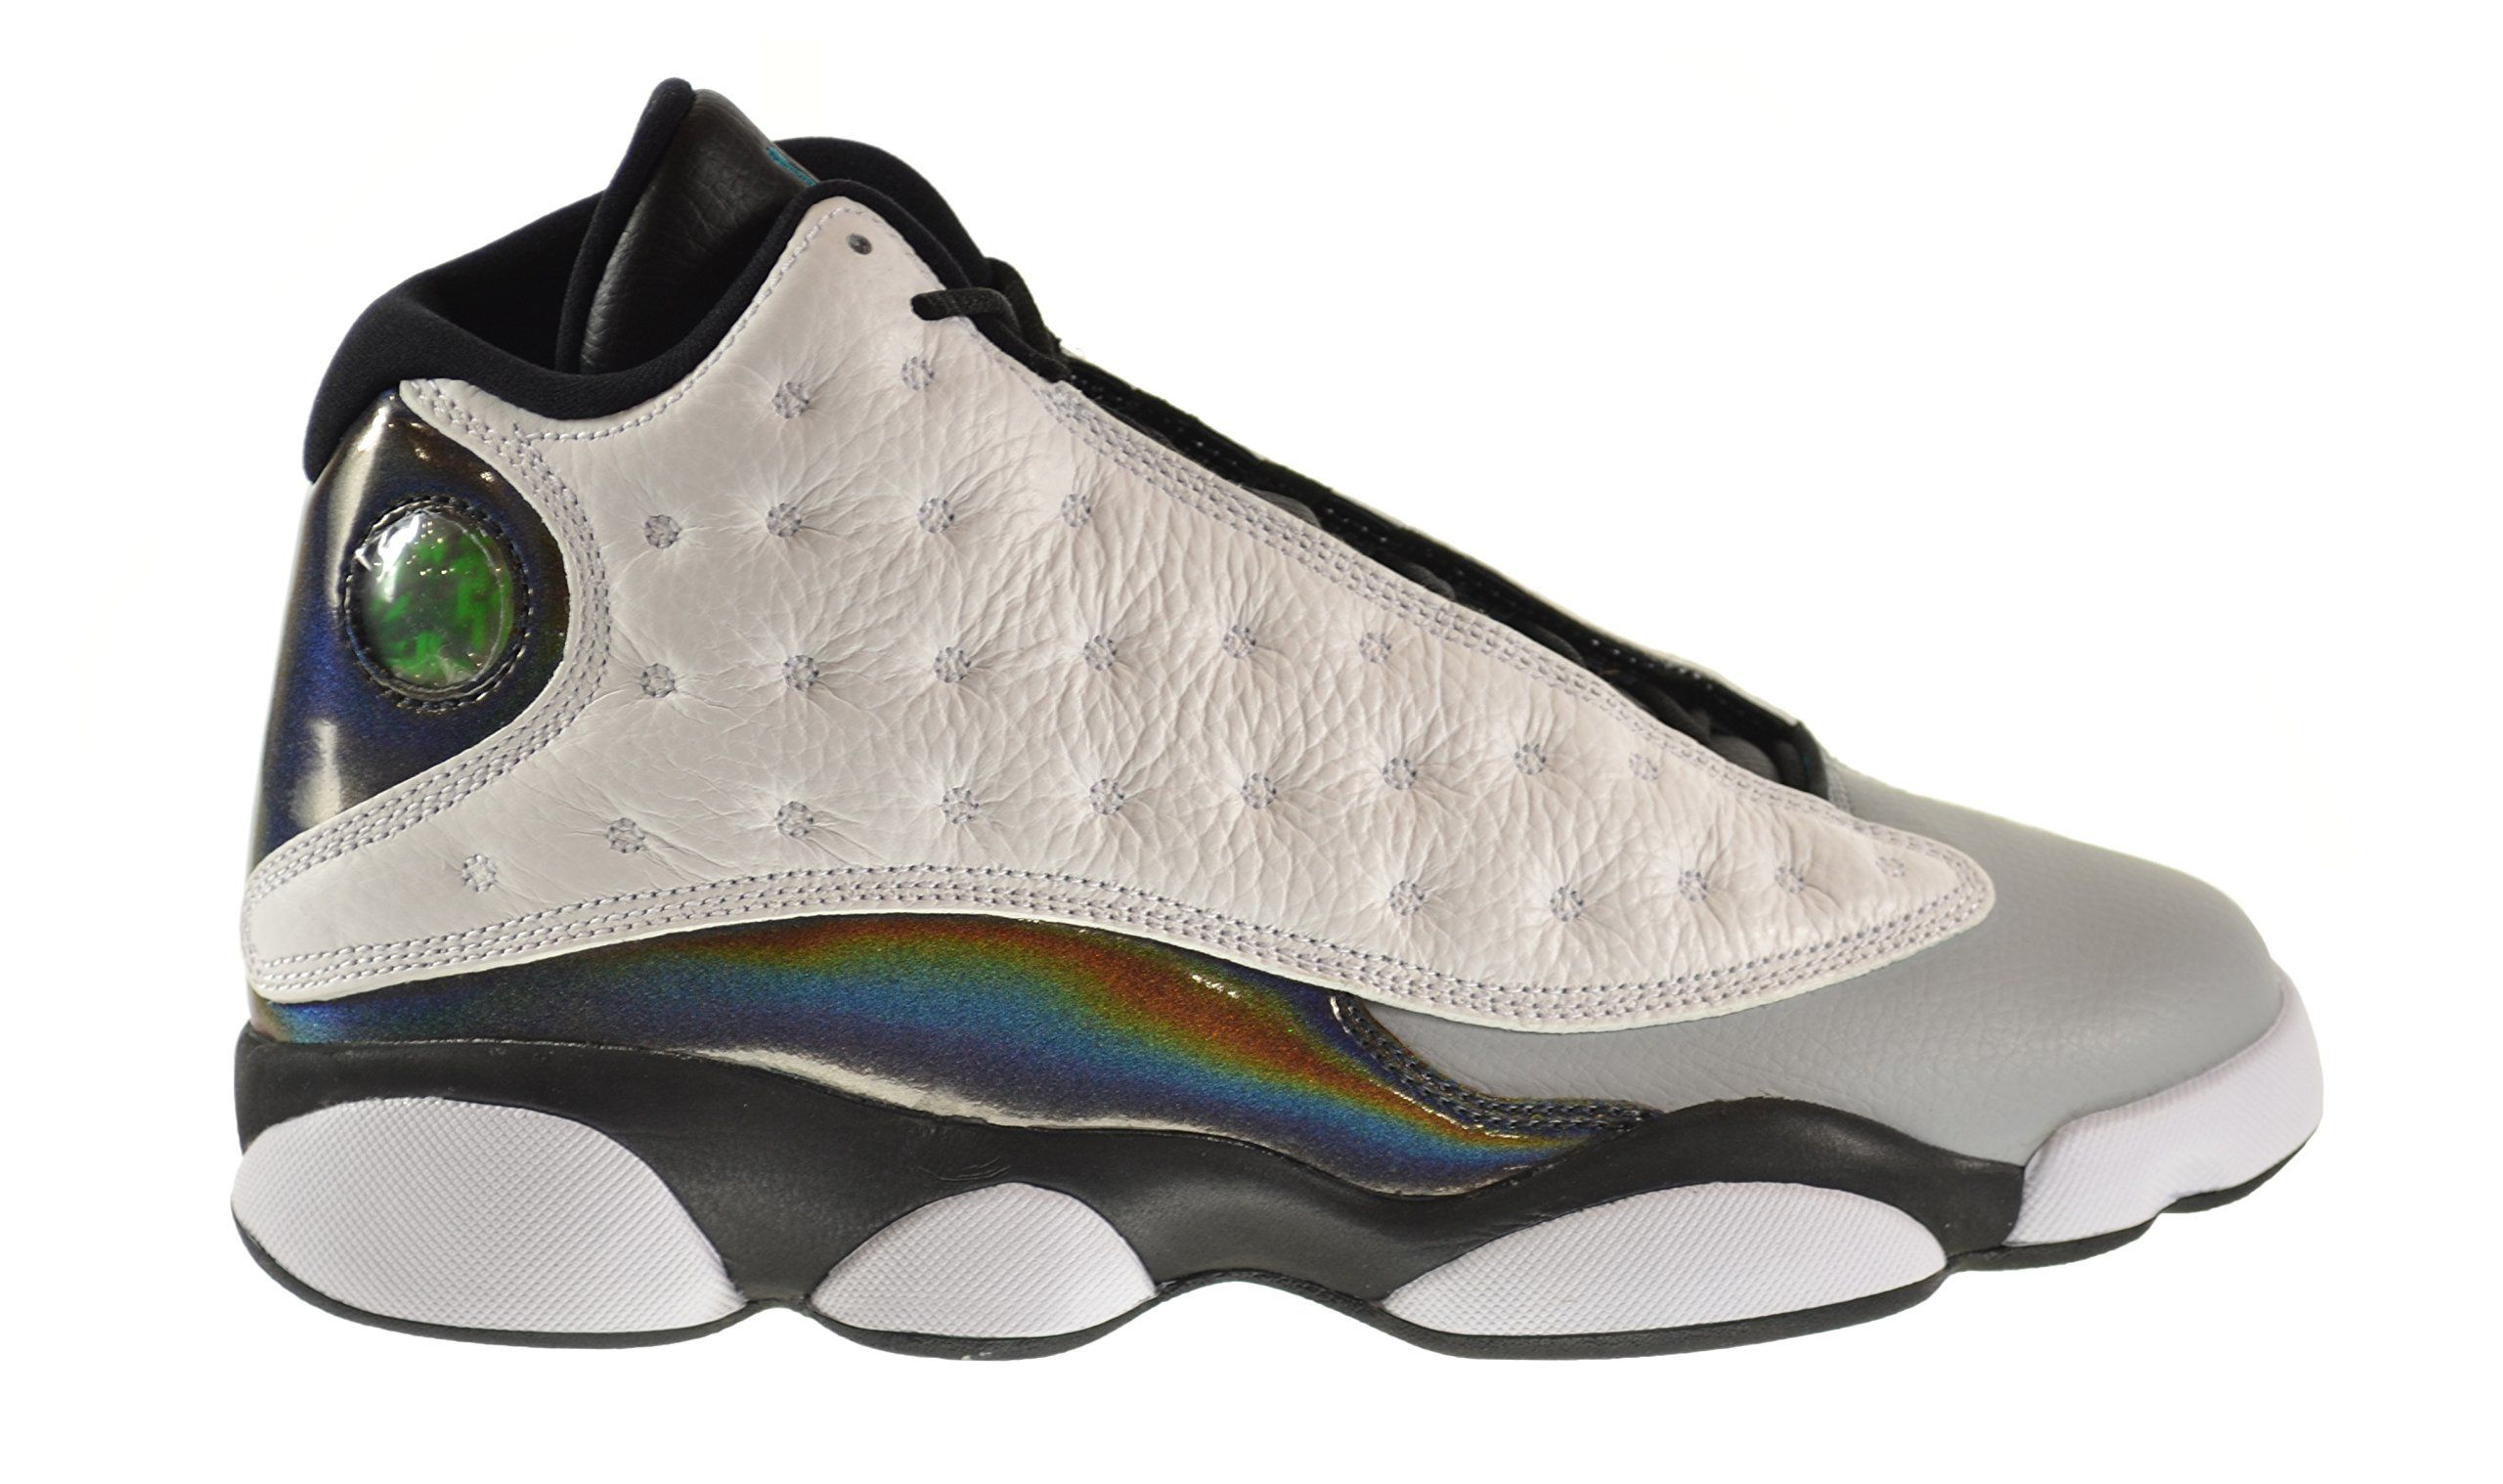 3dbf13d8231 Amazon.com: Air Jordan 13 Retro